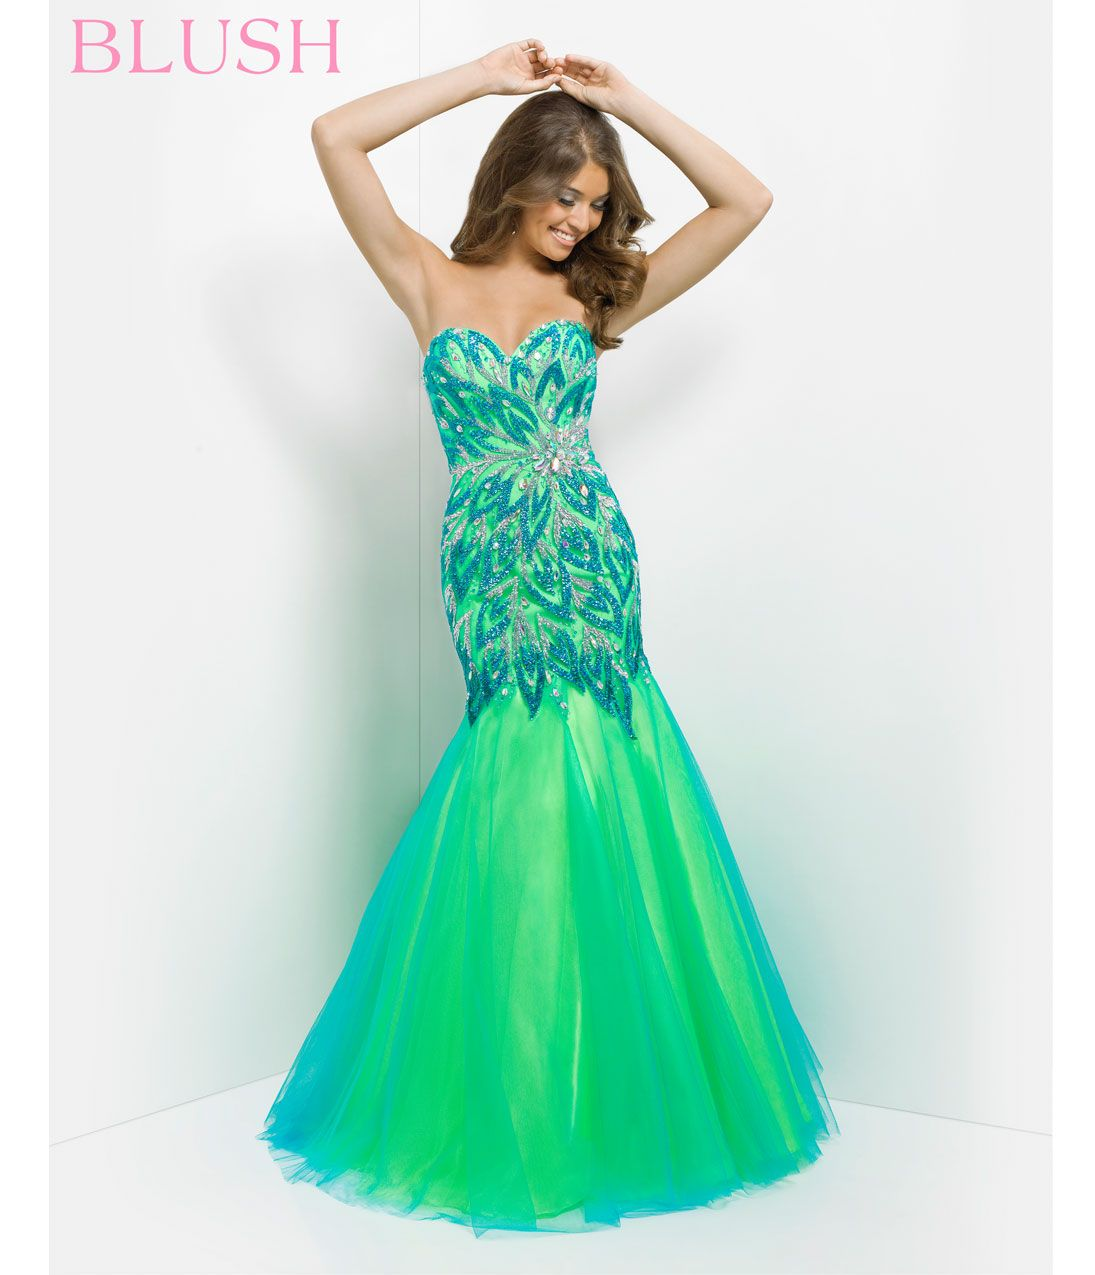 Turquoise fitted homecoming dresses